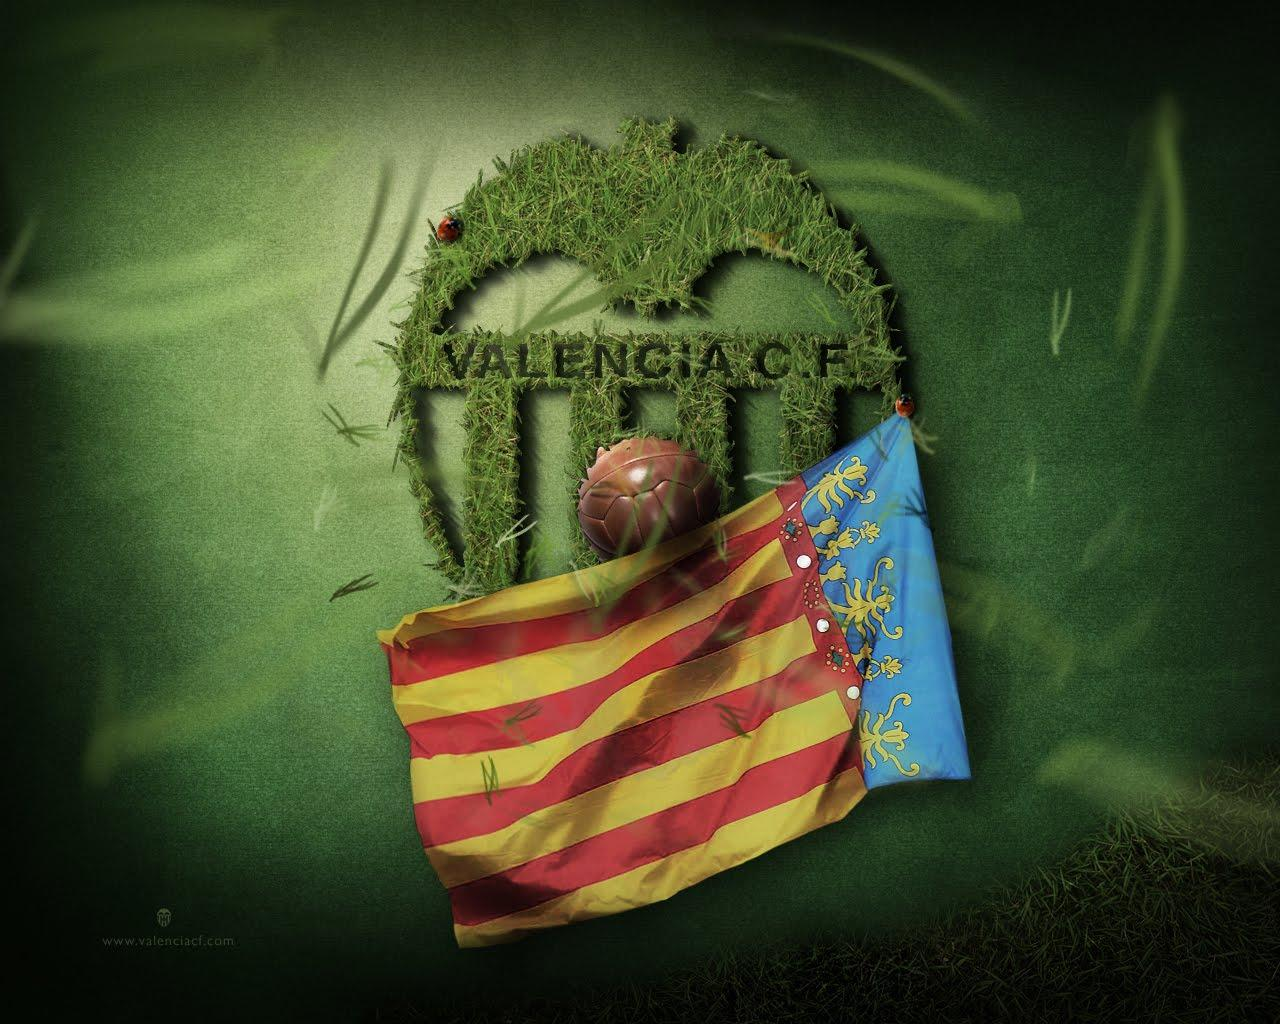 AMUNT VALENCIA. | Valencia CF | Pinterest | Valencia and Football team